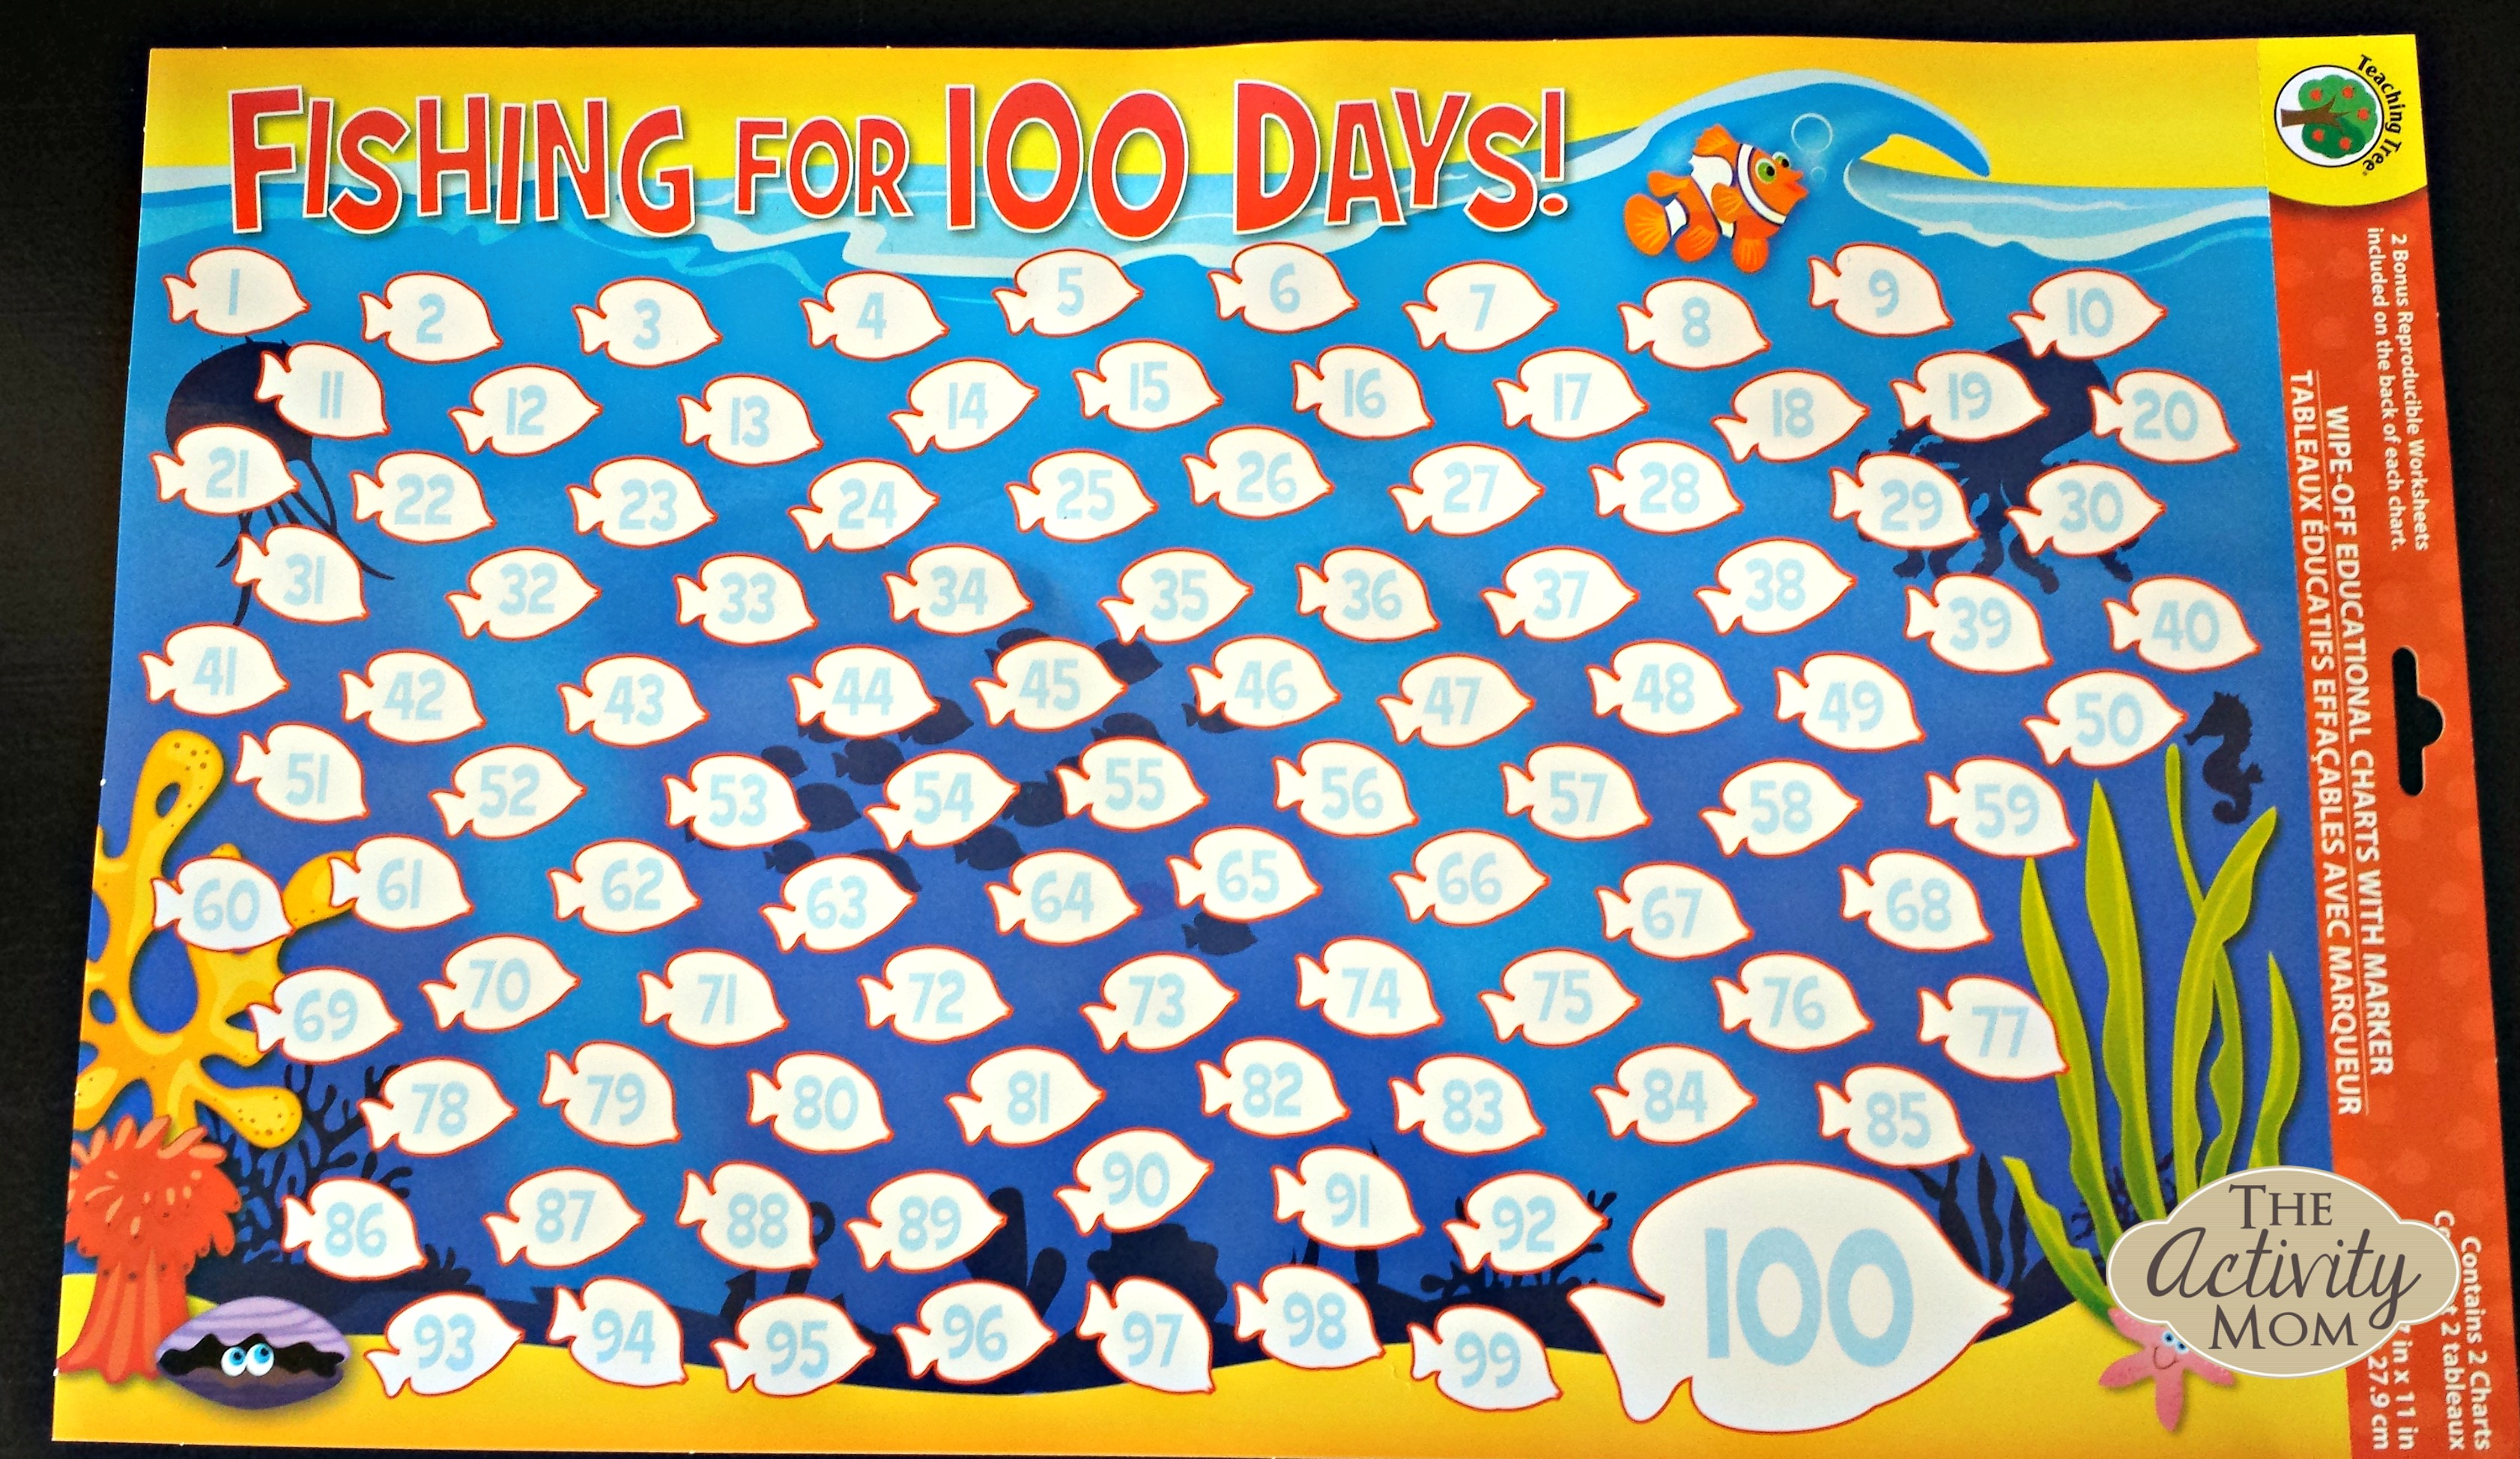 The Activity Mom - Race to 100 Math Game - The Activity Mom